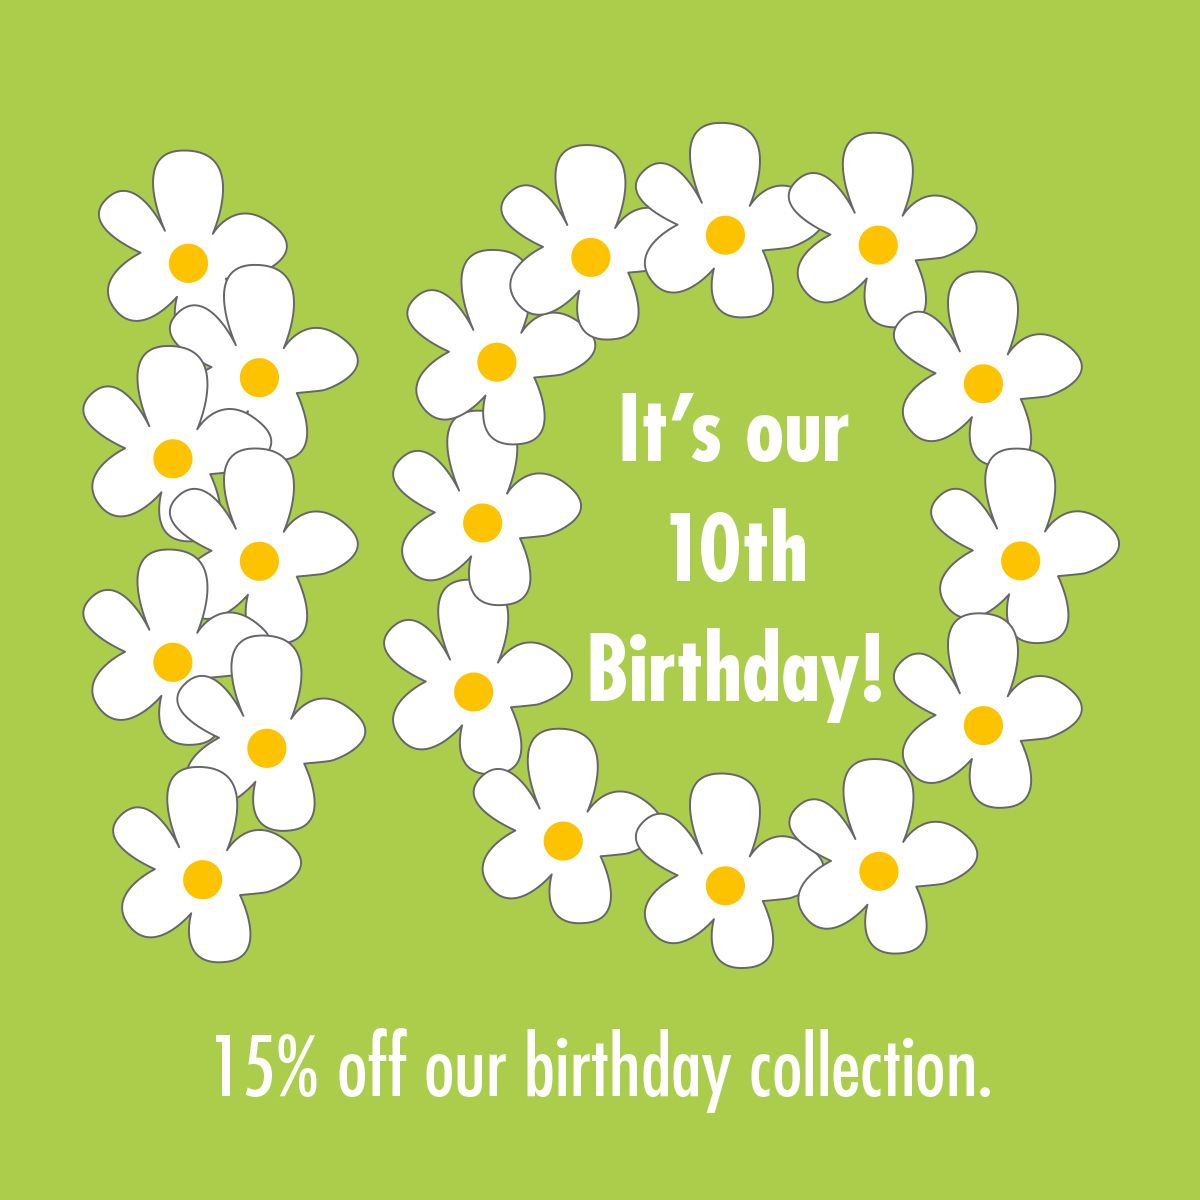 birthday collection pamper gifts special offers